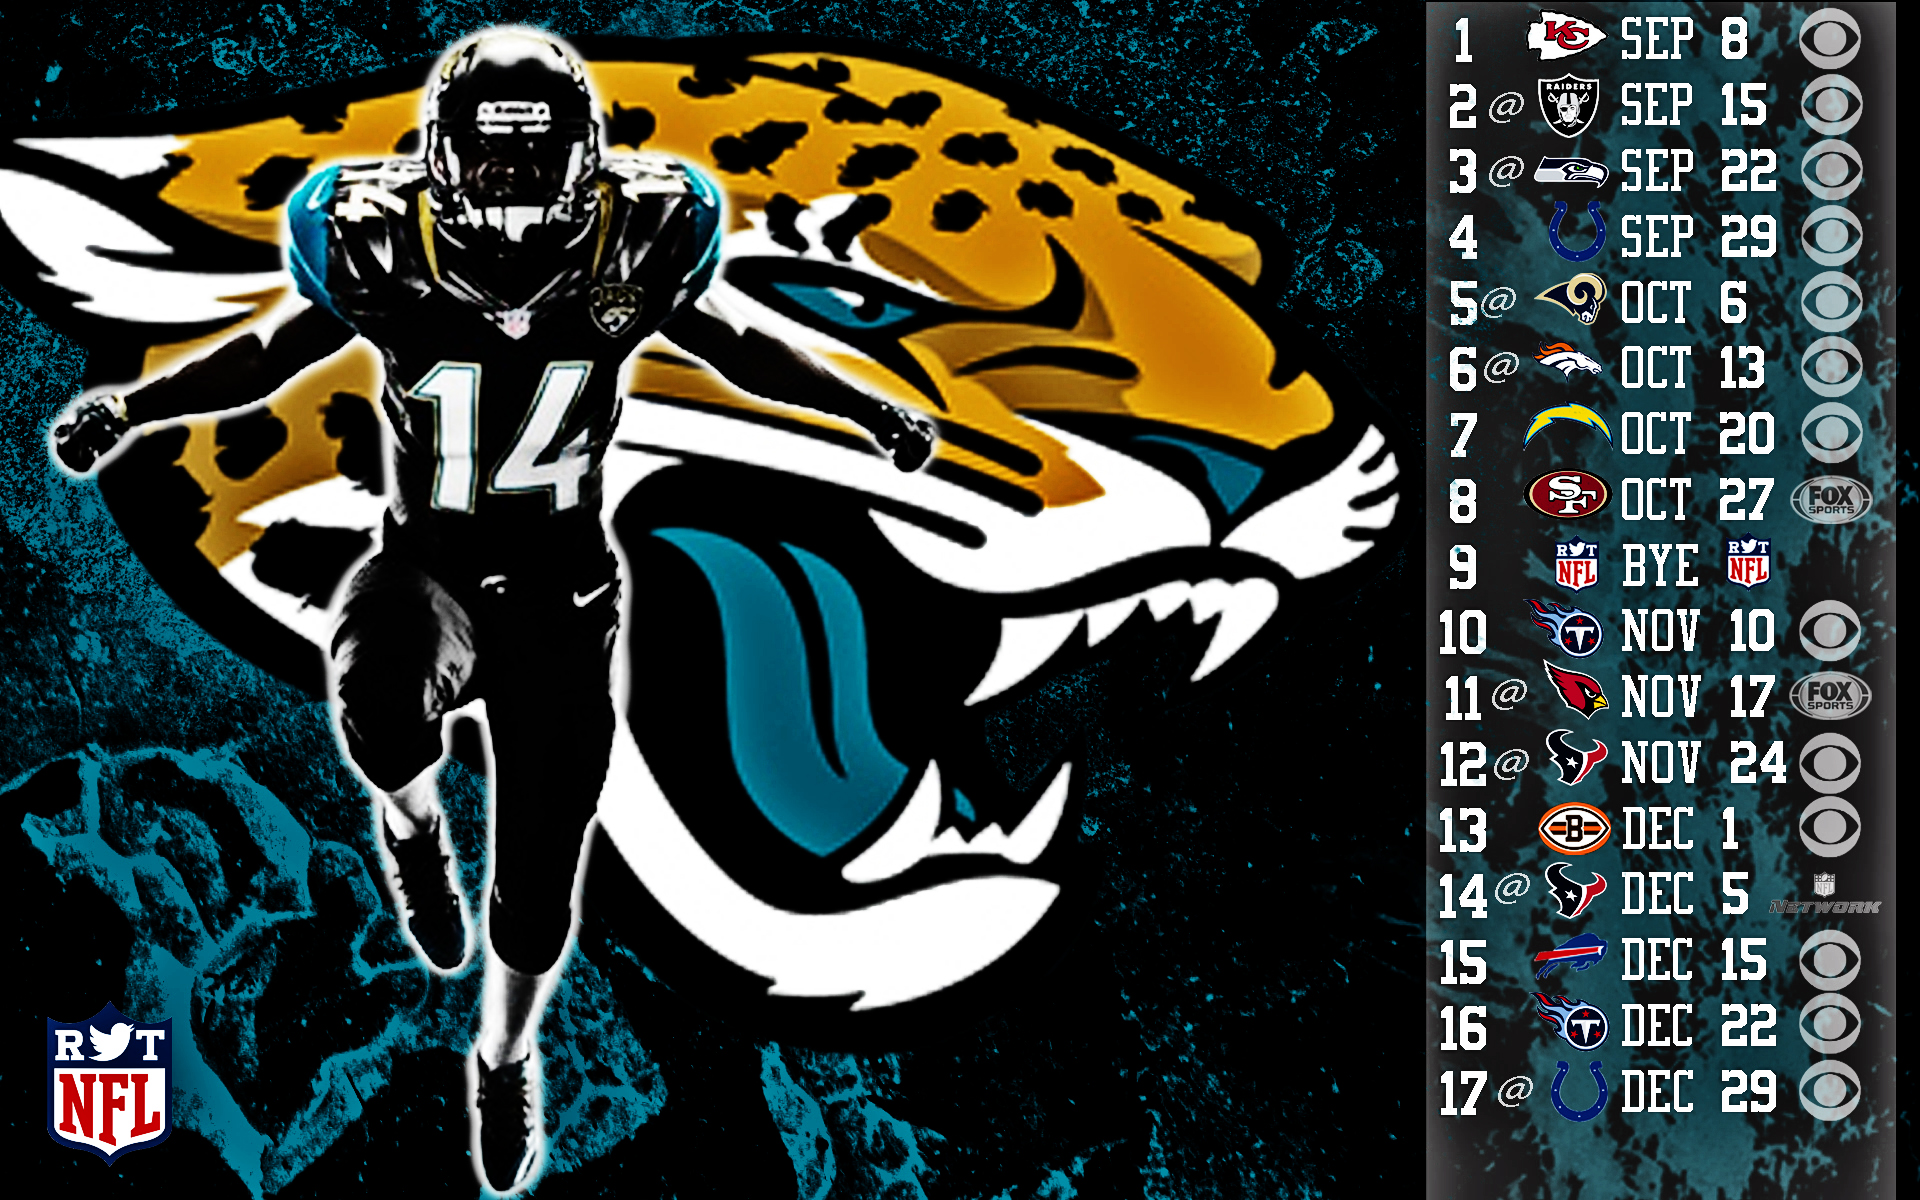 2013 Jacksonville Jaguars football nfl wallpaper 1920x1200 130413 1920x1200